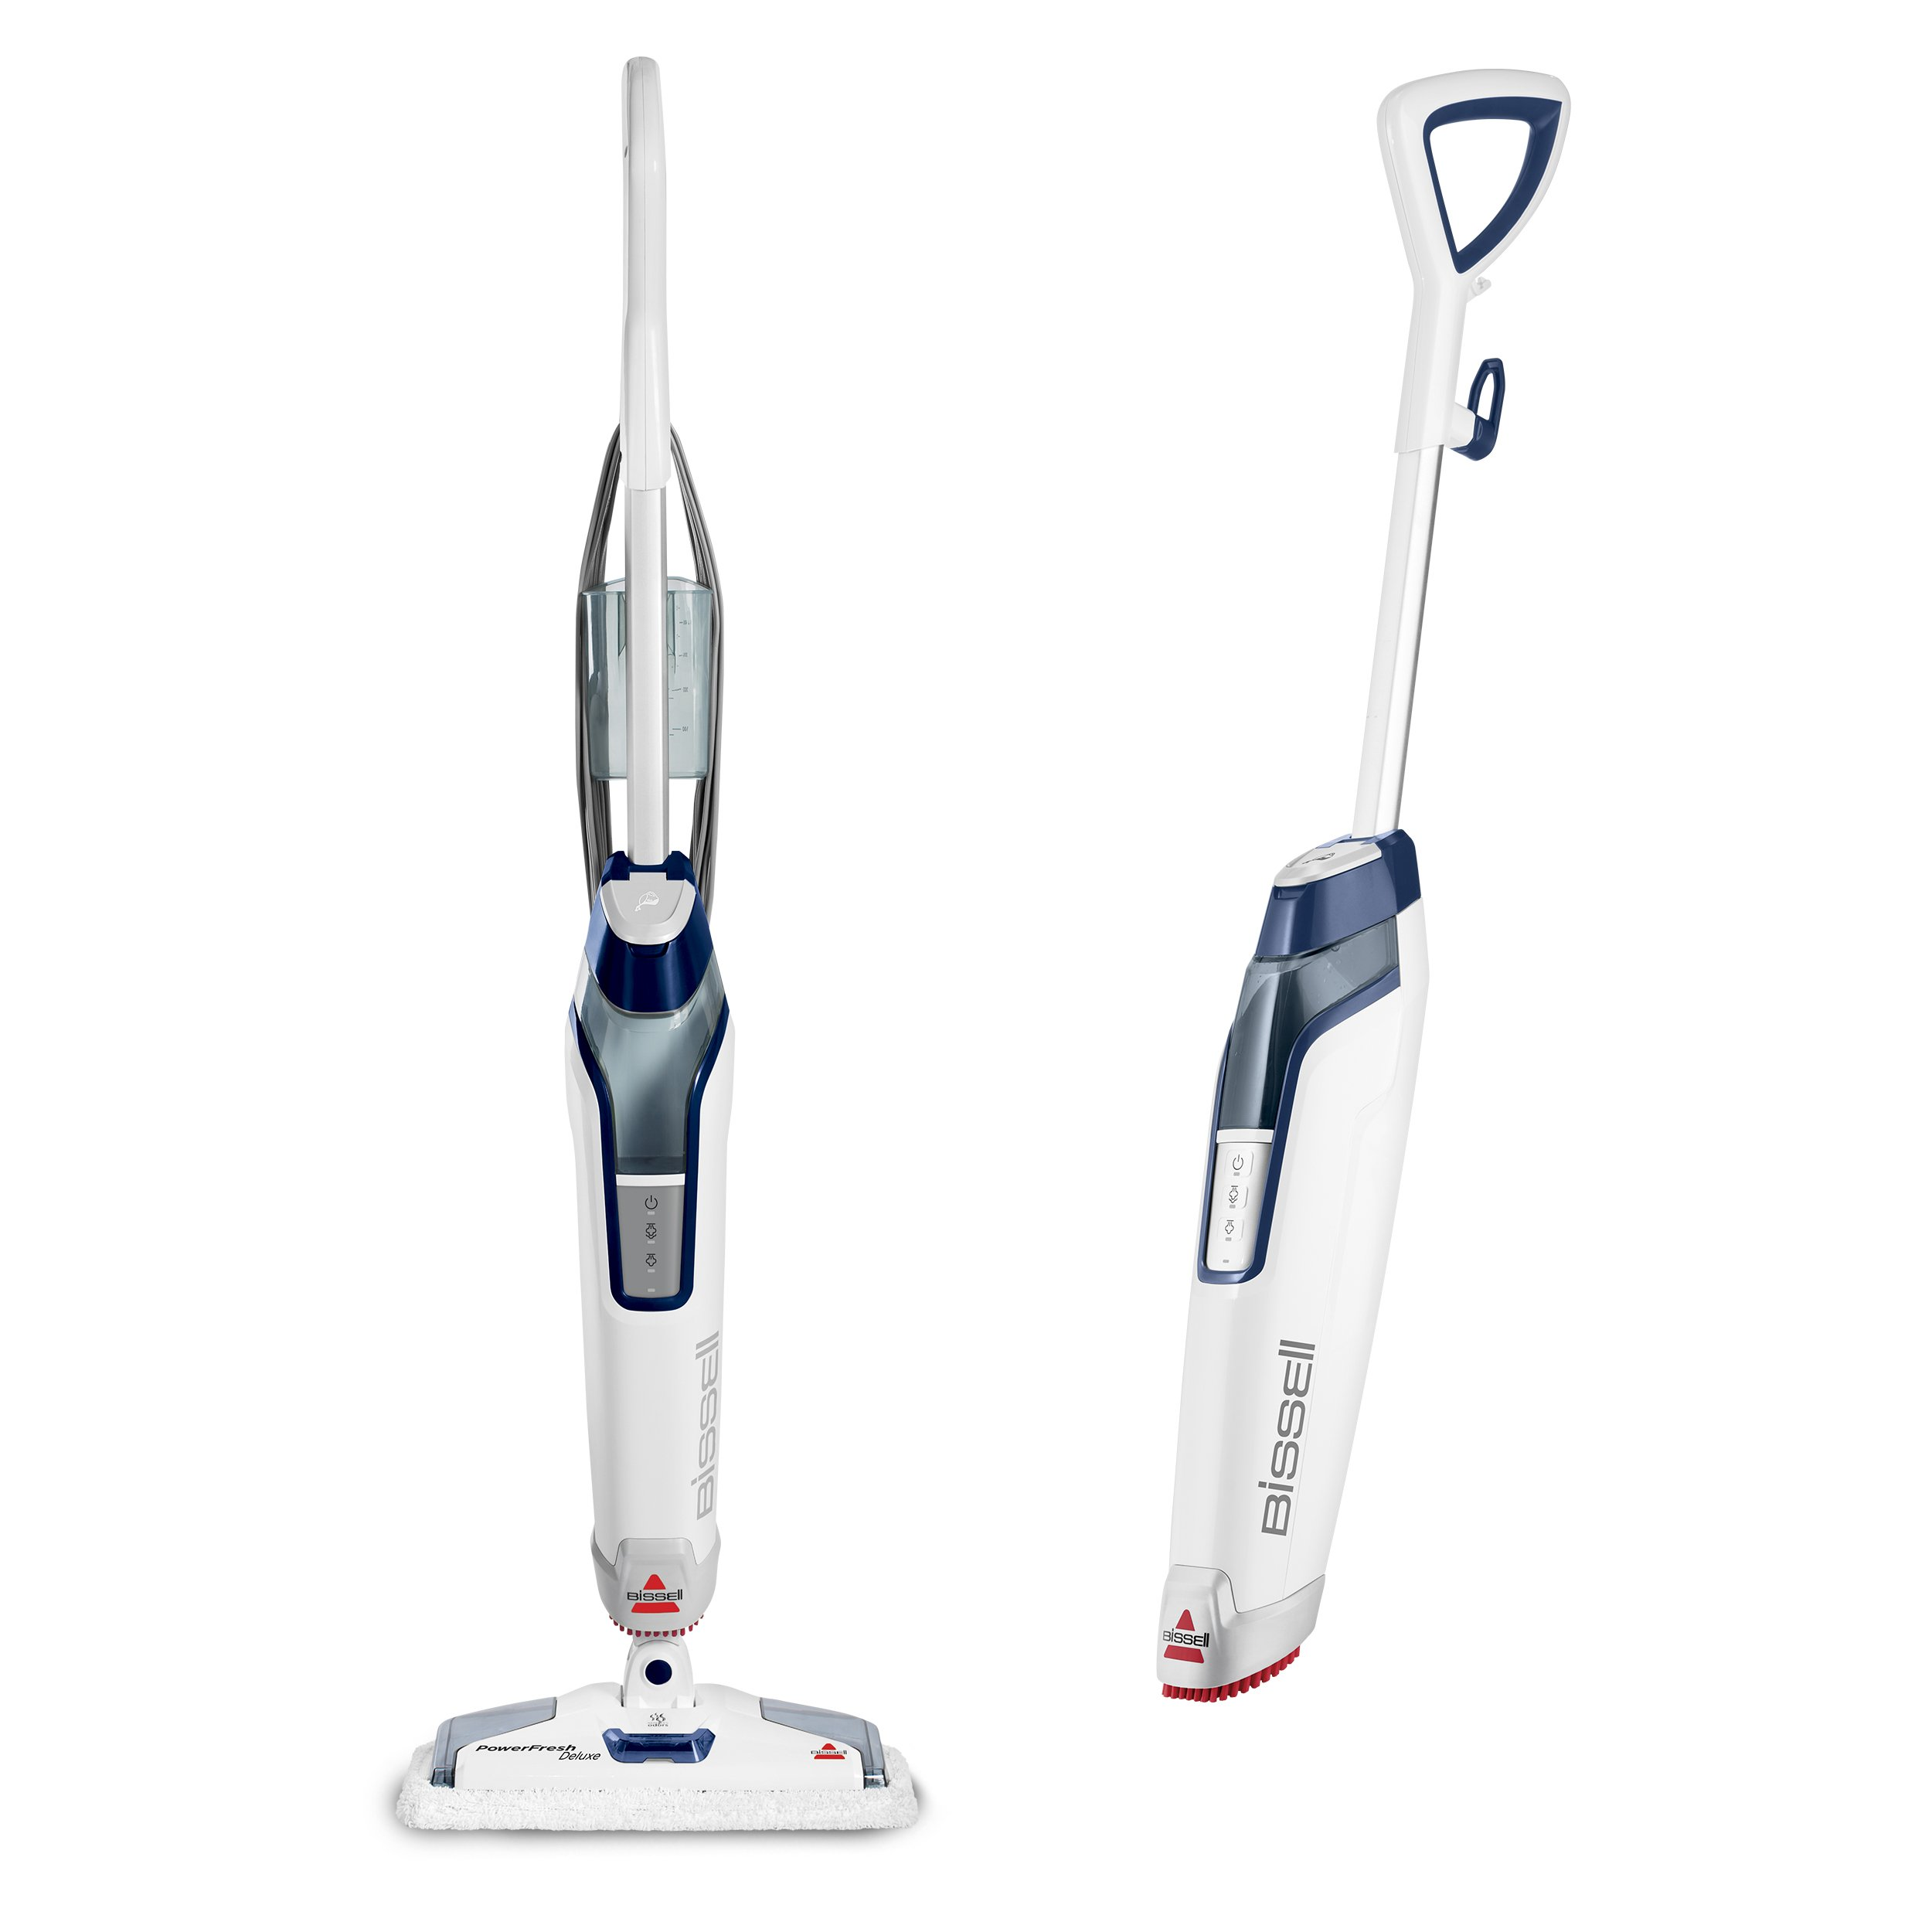 Bissell 1806C Powerfresh Deluxe Steam Mop, Floor Steamer, Tile Cleaner, and Hard Wood Floor Cleaner, 1806, Sapphire Powerfresh Deluxe